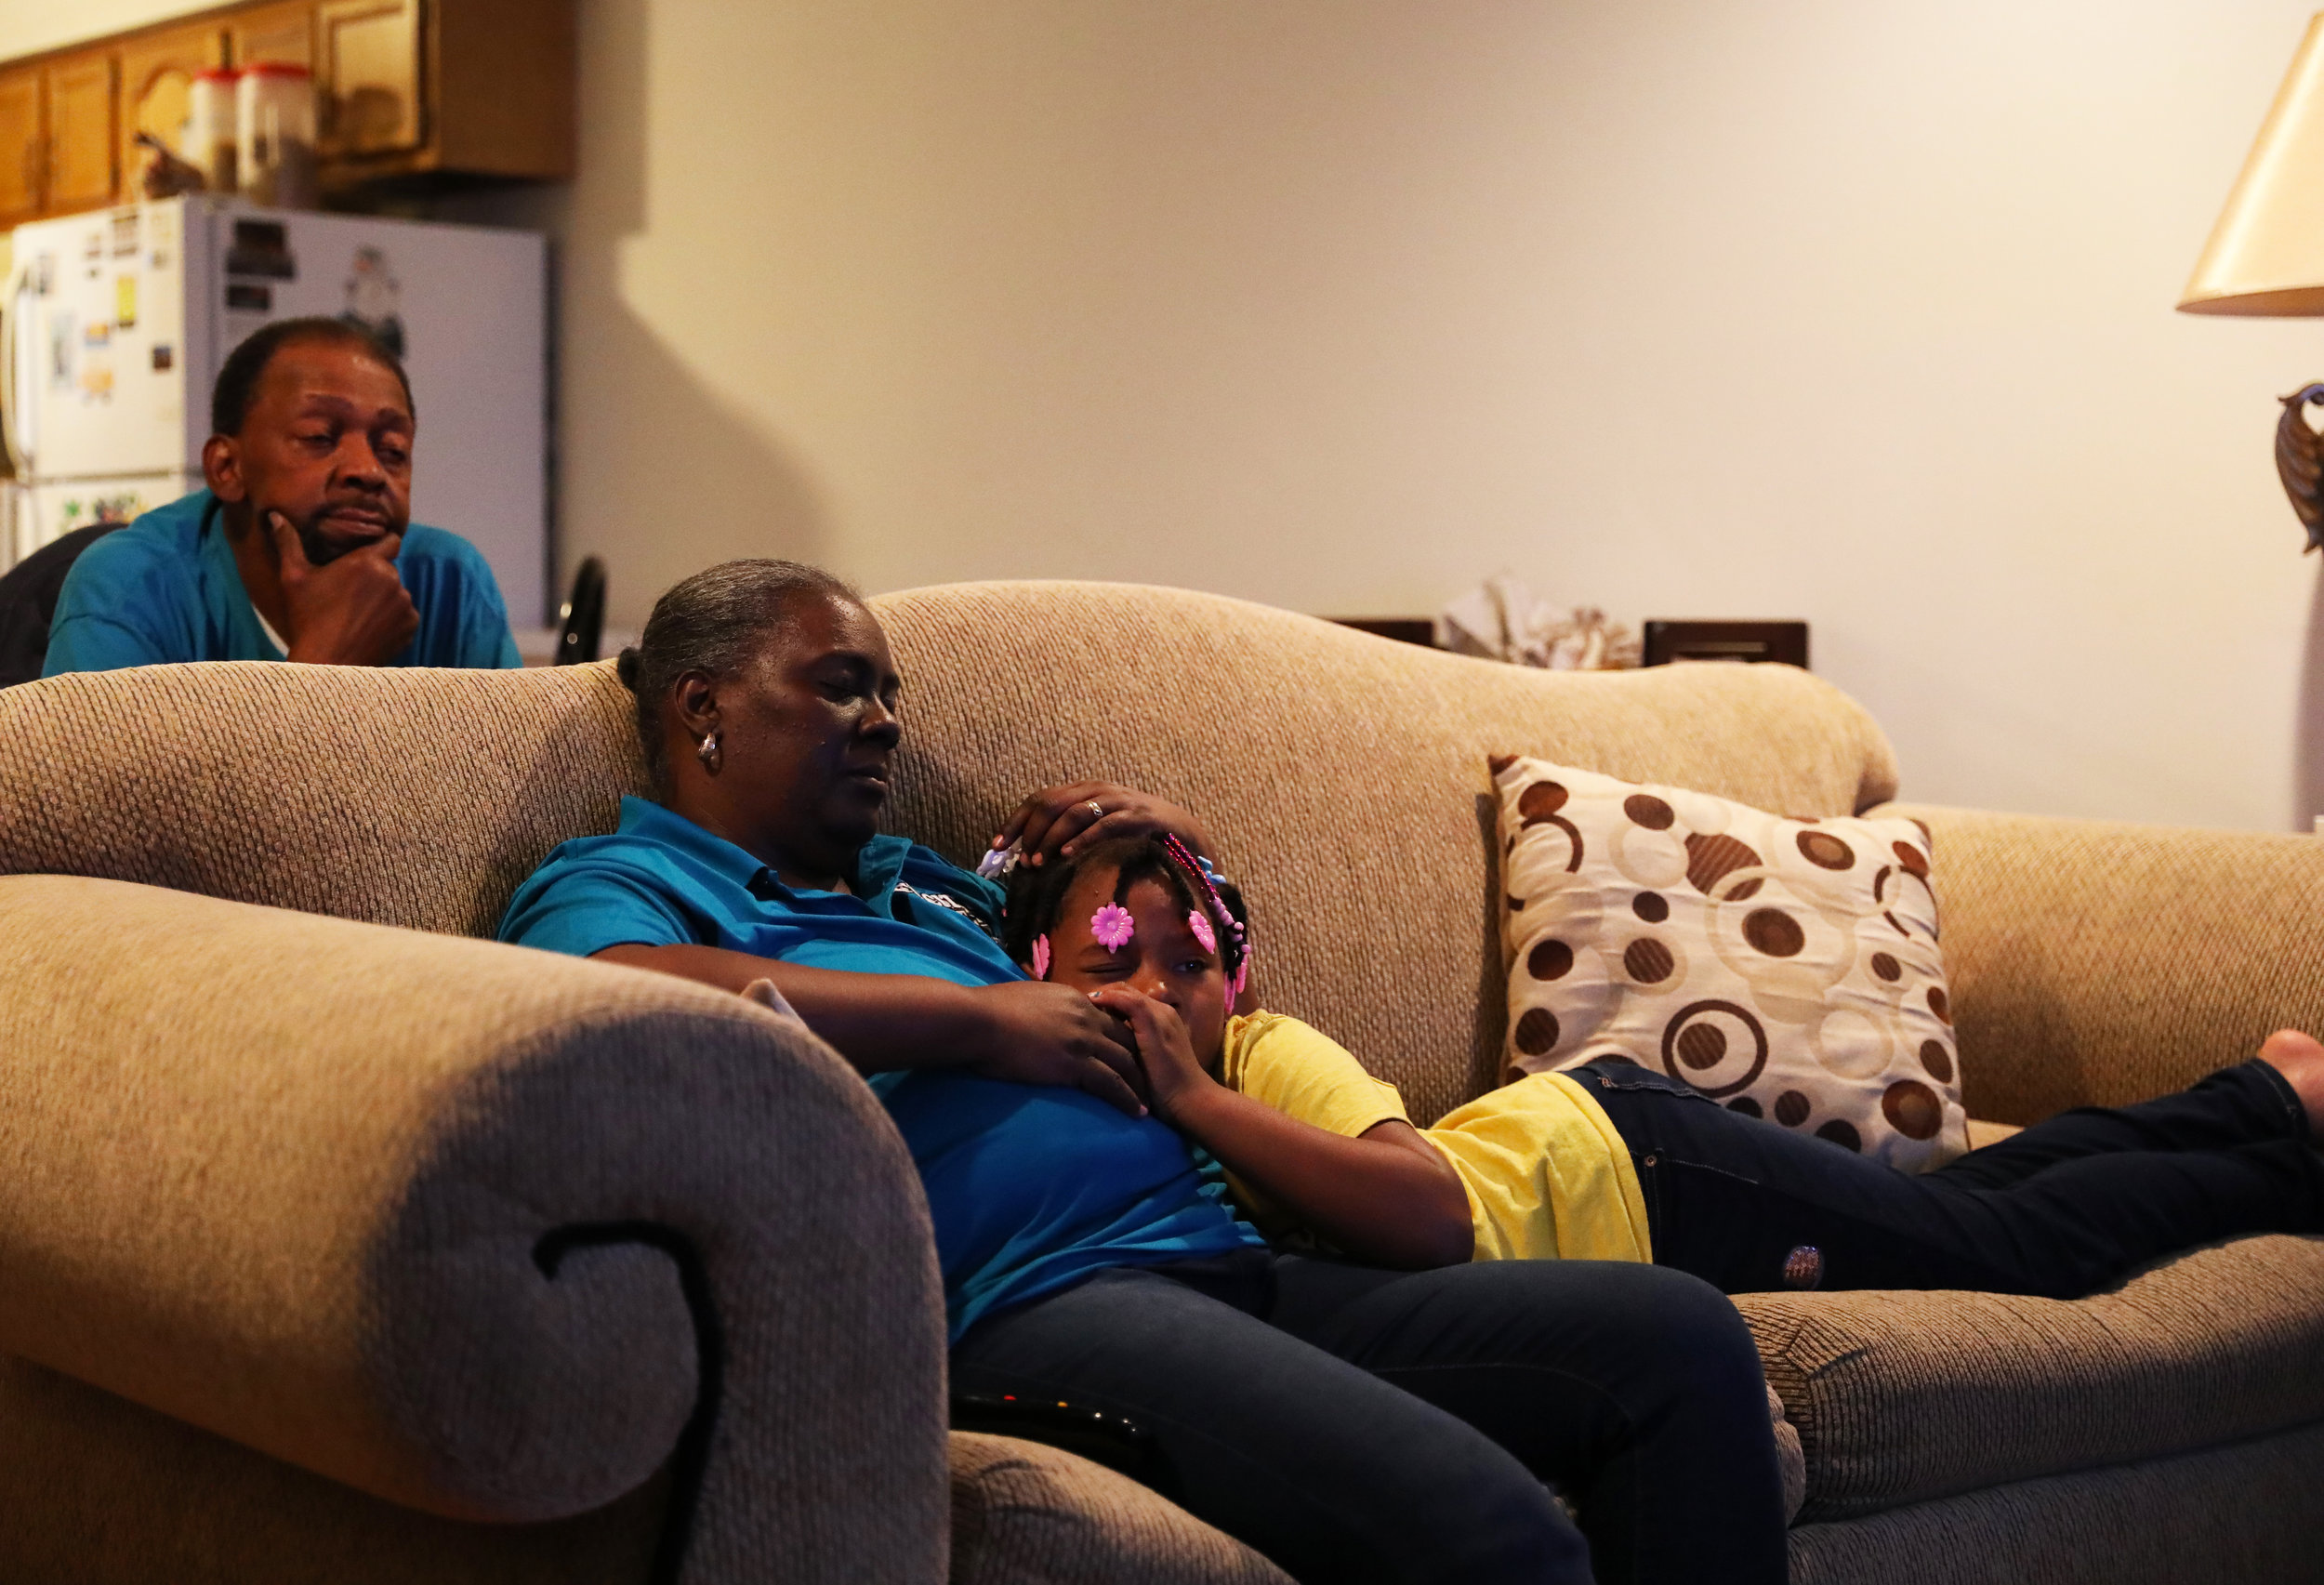 "Tammy Kelliehan, grandmother of four grandchildren, accompanies her granddaughter Idelayjha Lewis-Scott sitting on the sofa and watching the TV show before having dinner on Saturday, Oct. 27, 2018 in Columbia, Missouri. Kelliehan laughs and strokes Lewis-Scott's head. Lewis-Scott is the one grandchild who calls Kelliehan ""Mimi"". Other grandchildren call her ""Mima"". (Photo by Yanran Huang)"